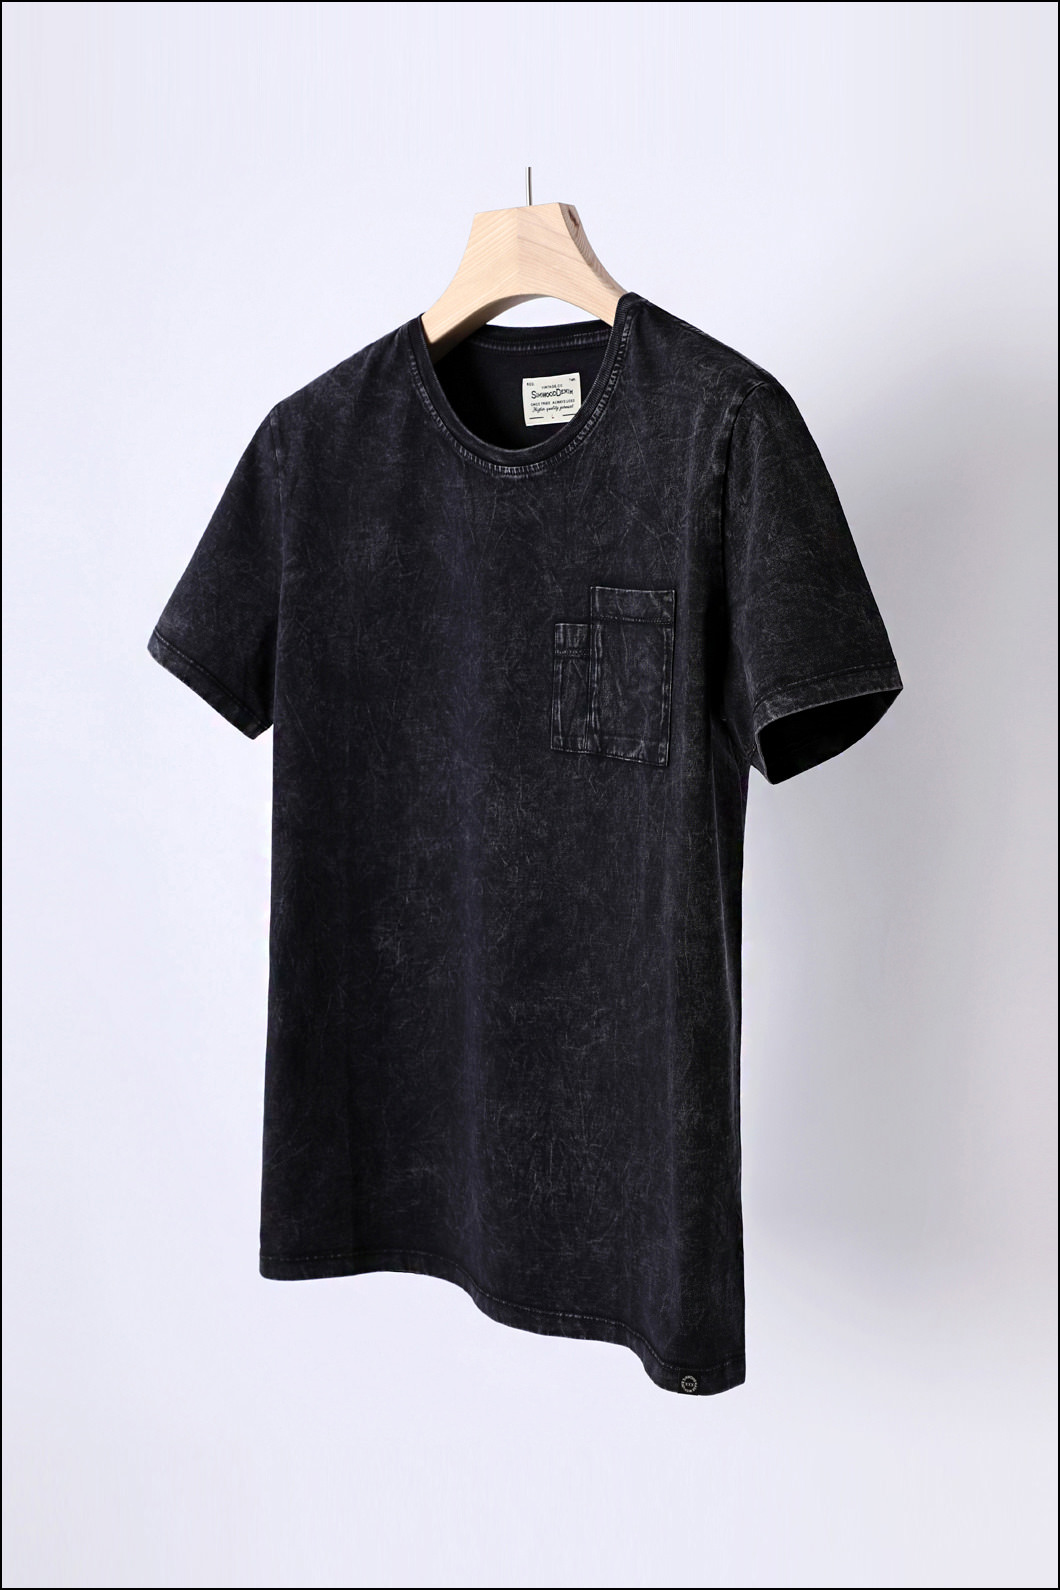 SIMWOOD WASHED ROUND T-SHIRT-CHARCOAL수입한정제품